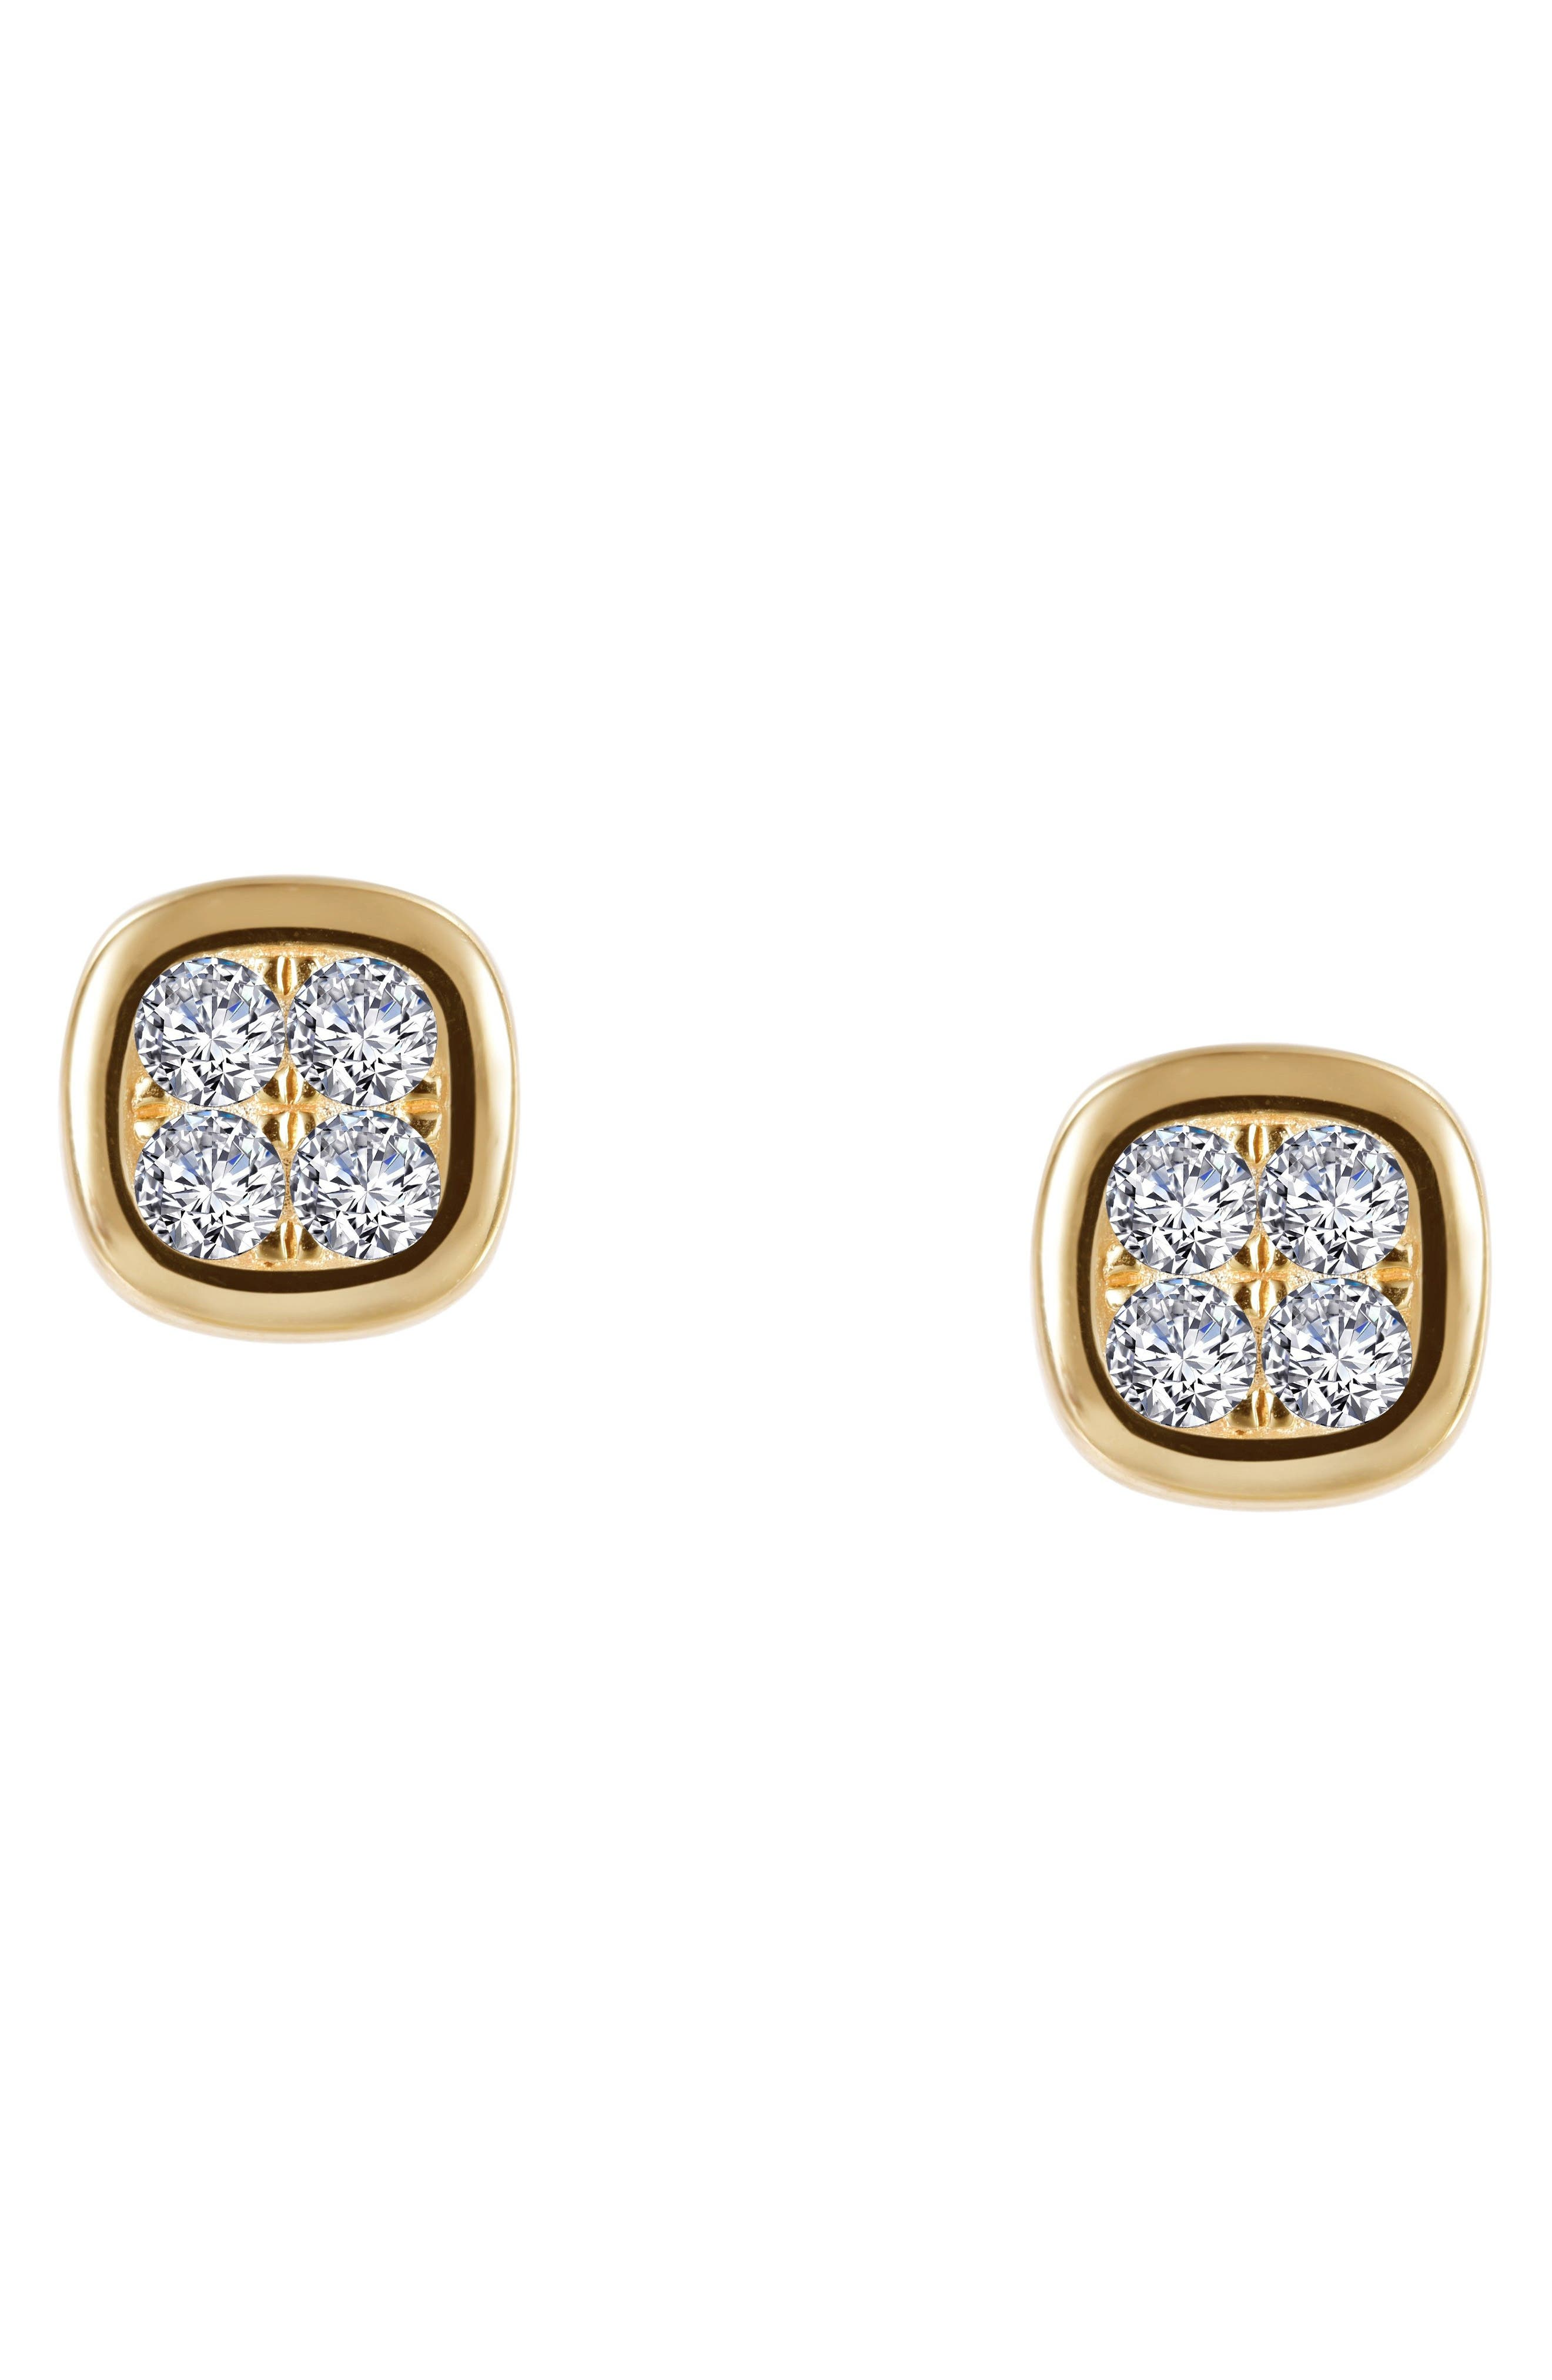 Bezel Stud Earrings,                             Main thumbnail 1, color,                             SILVER/ GOLD/ CLEAR